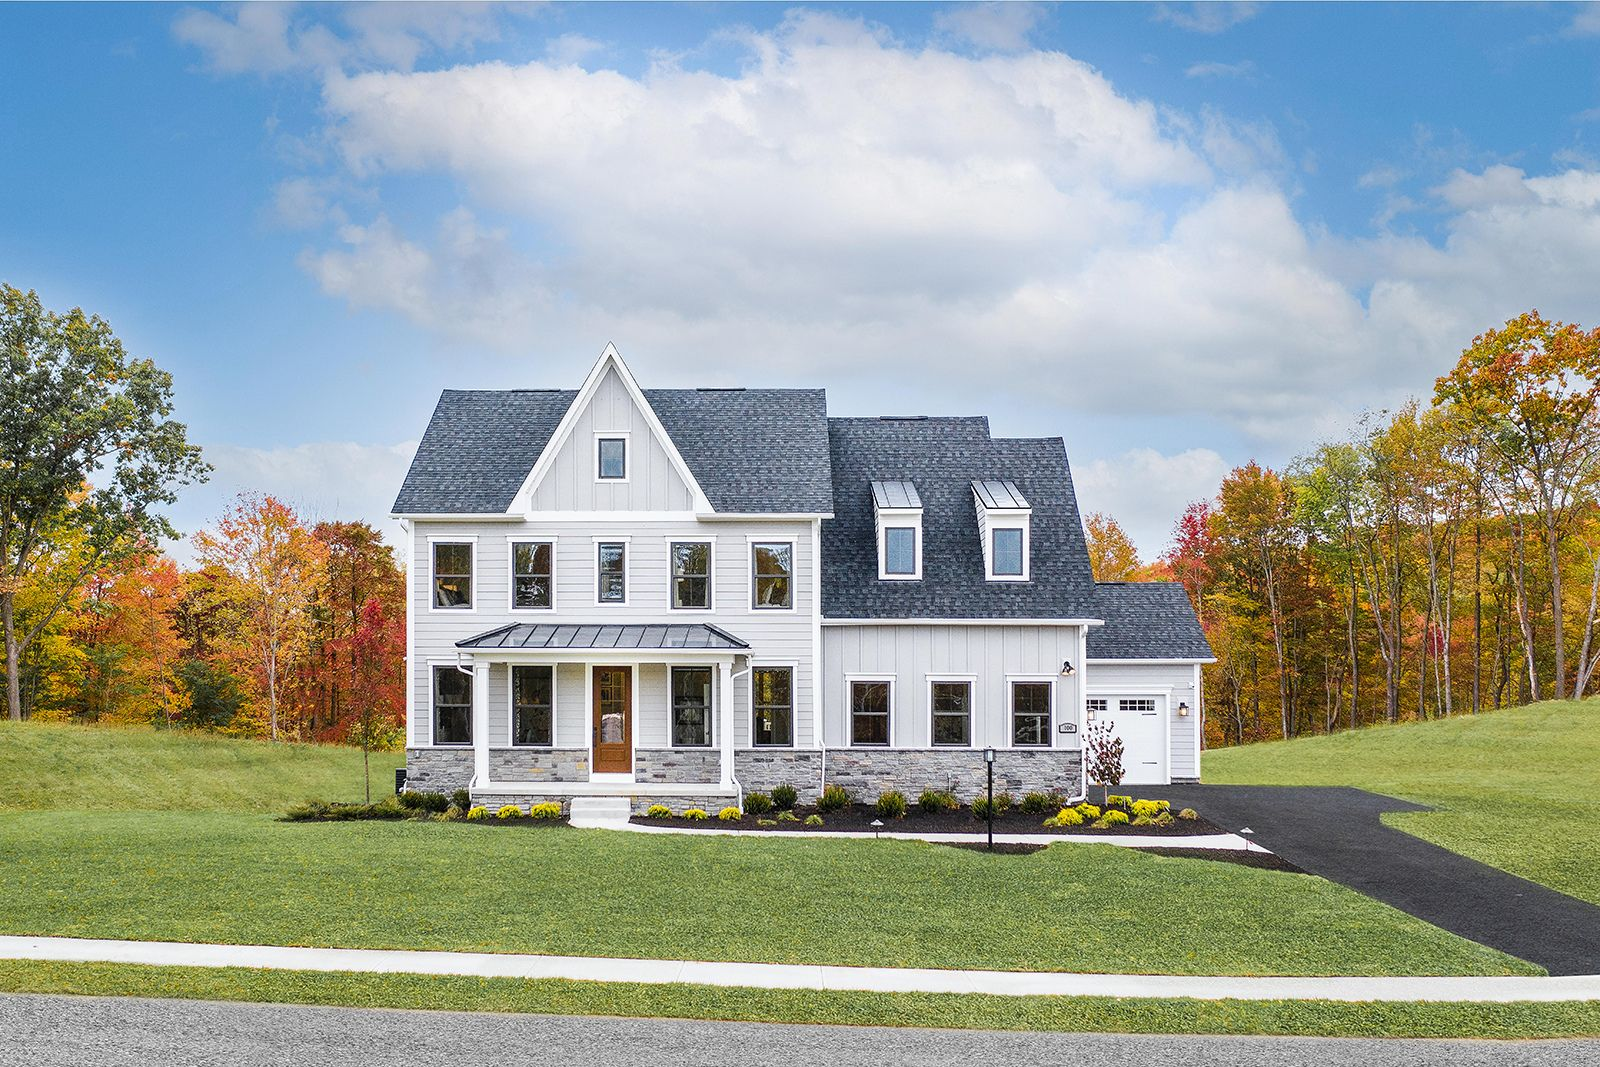 Welcome Home to Brookhaven:The only new homes in Mars with 1/2 - 3/4 acre homesites with usable backyards, stunning views, and high end finishes all included. Plus up to a 4-car garage!Schedule your visit at Brookhaven.